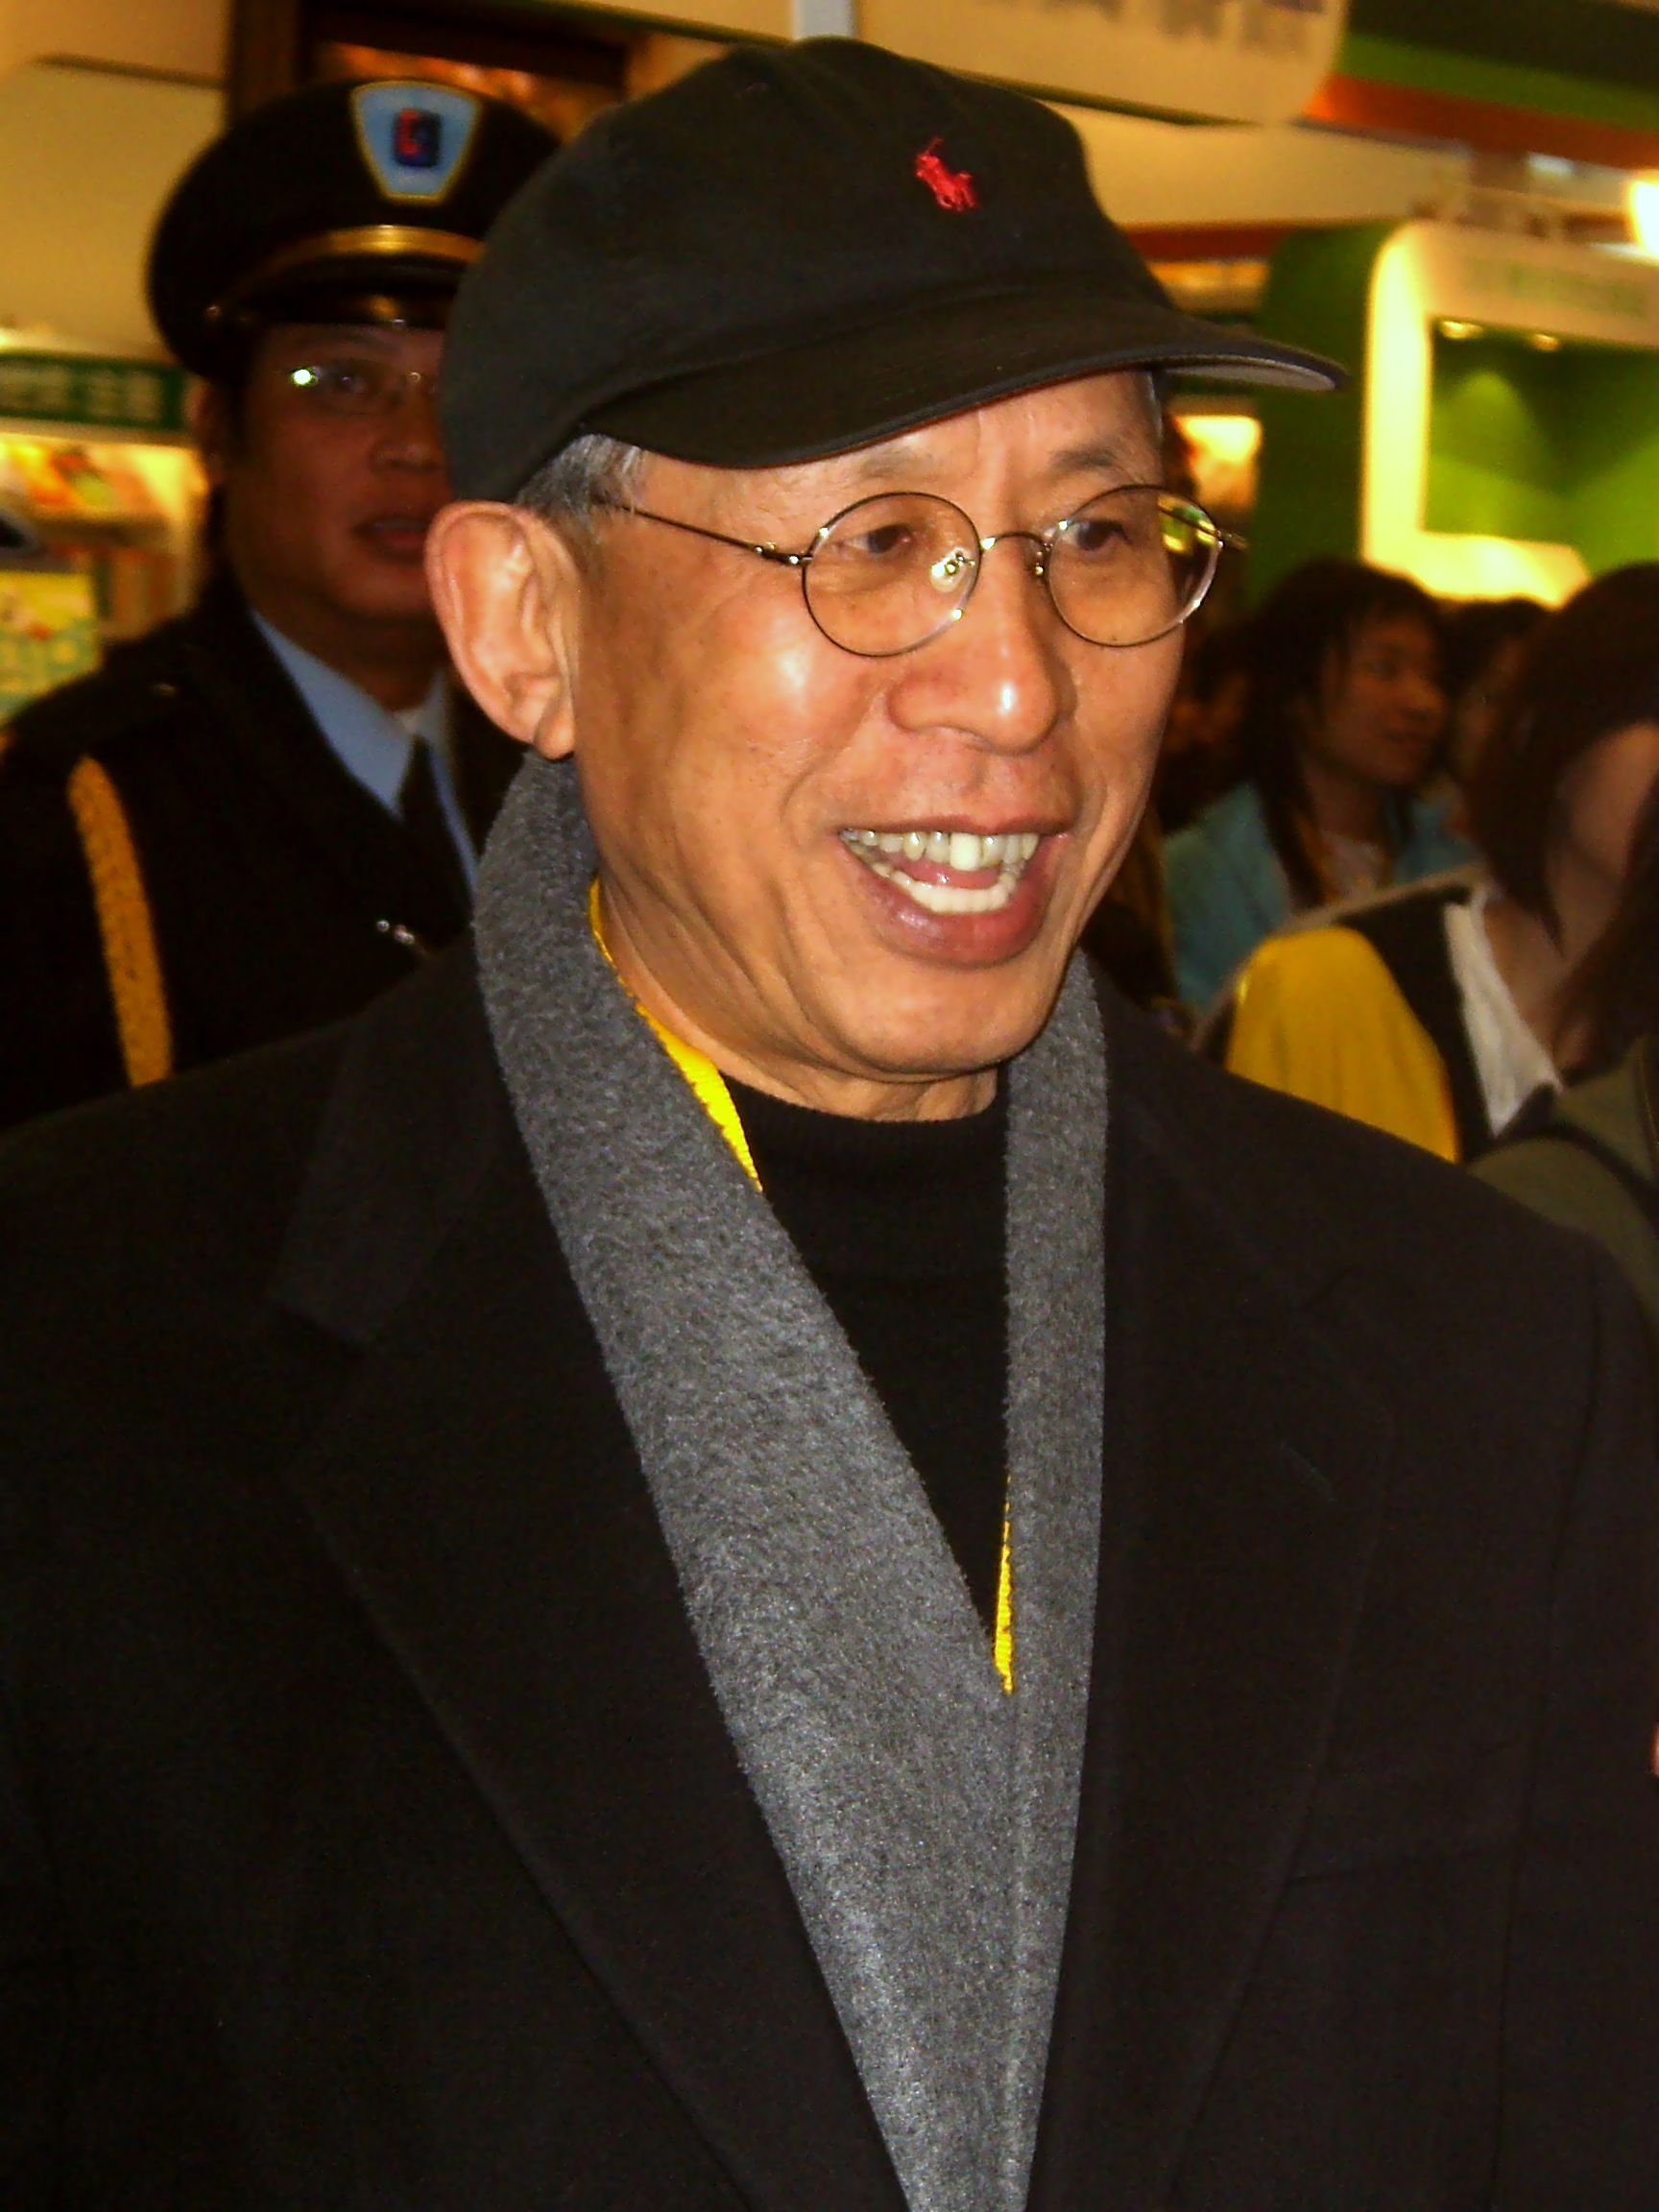 Wang Tuoh, a Taiwanese writer, literary critic and politician